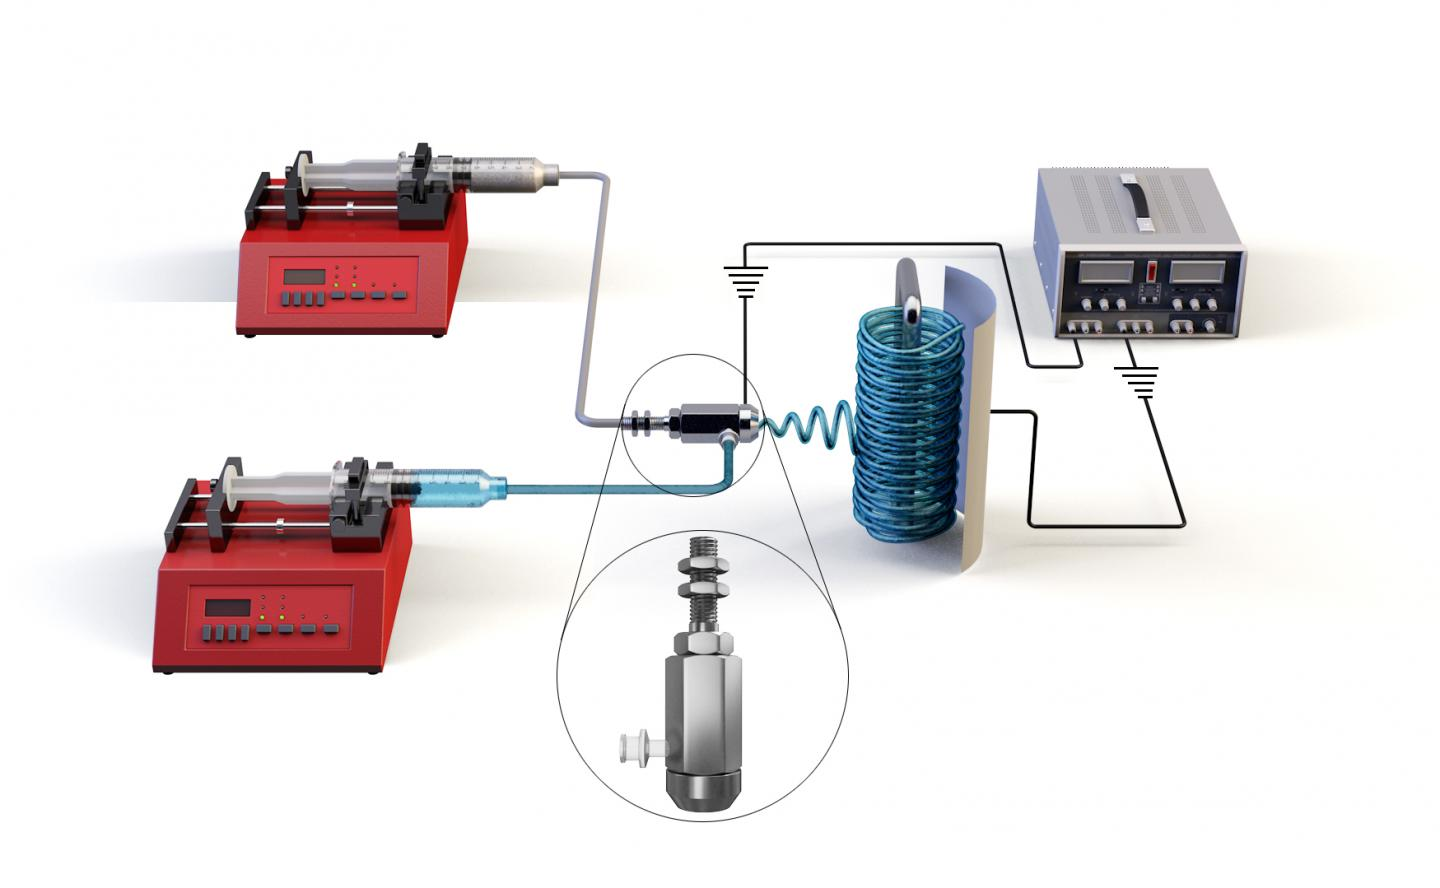 Schematic of Co-Axial Electrospinning Device